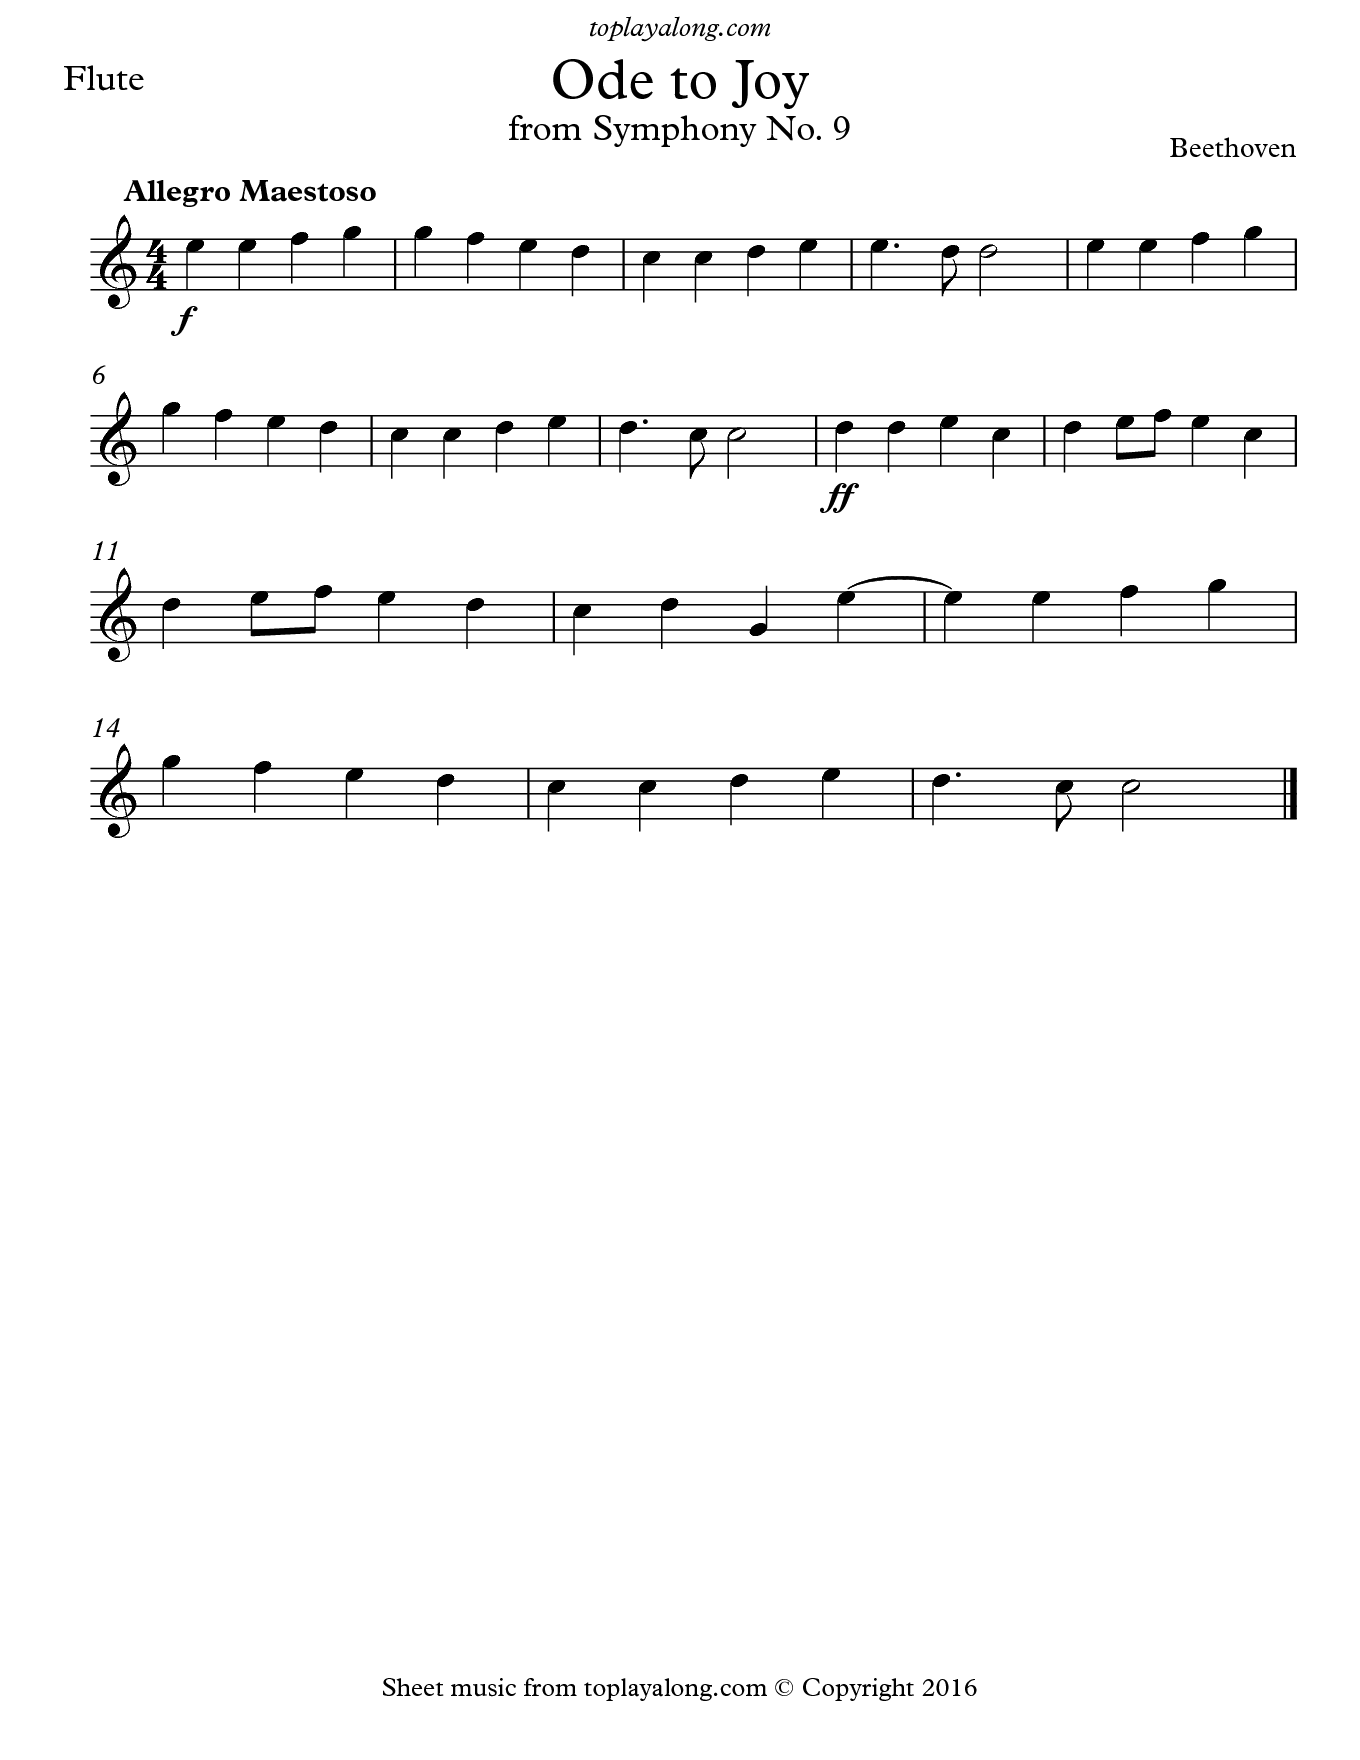 Ode to Joy from Symphony No. 9 by Beethoven. Sheet music for Flute, page 1.